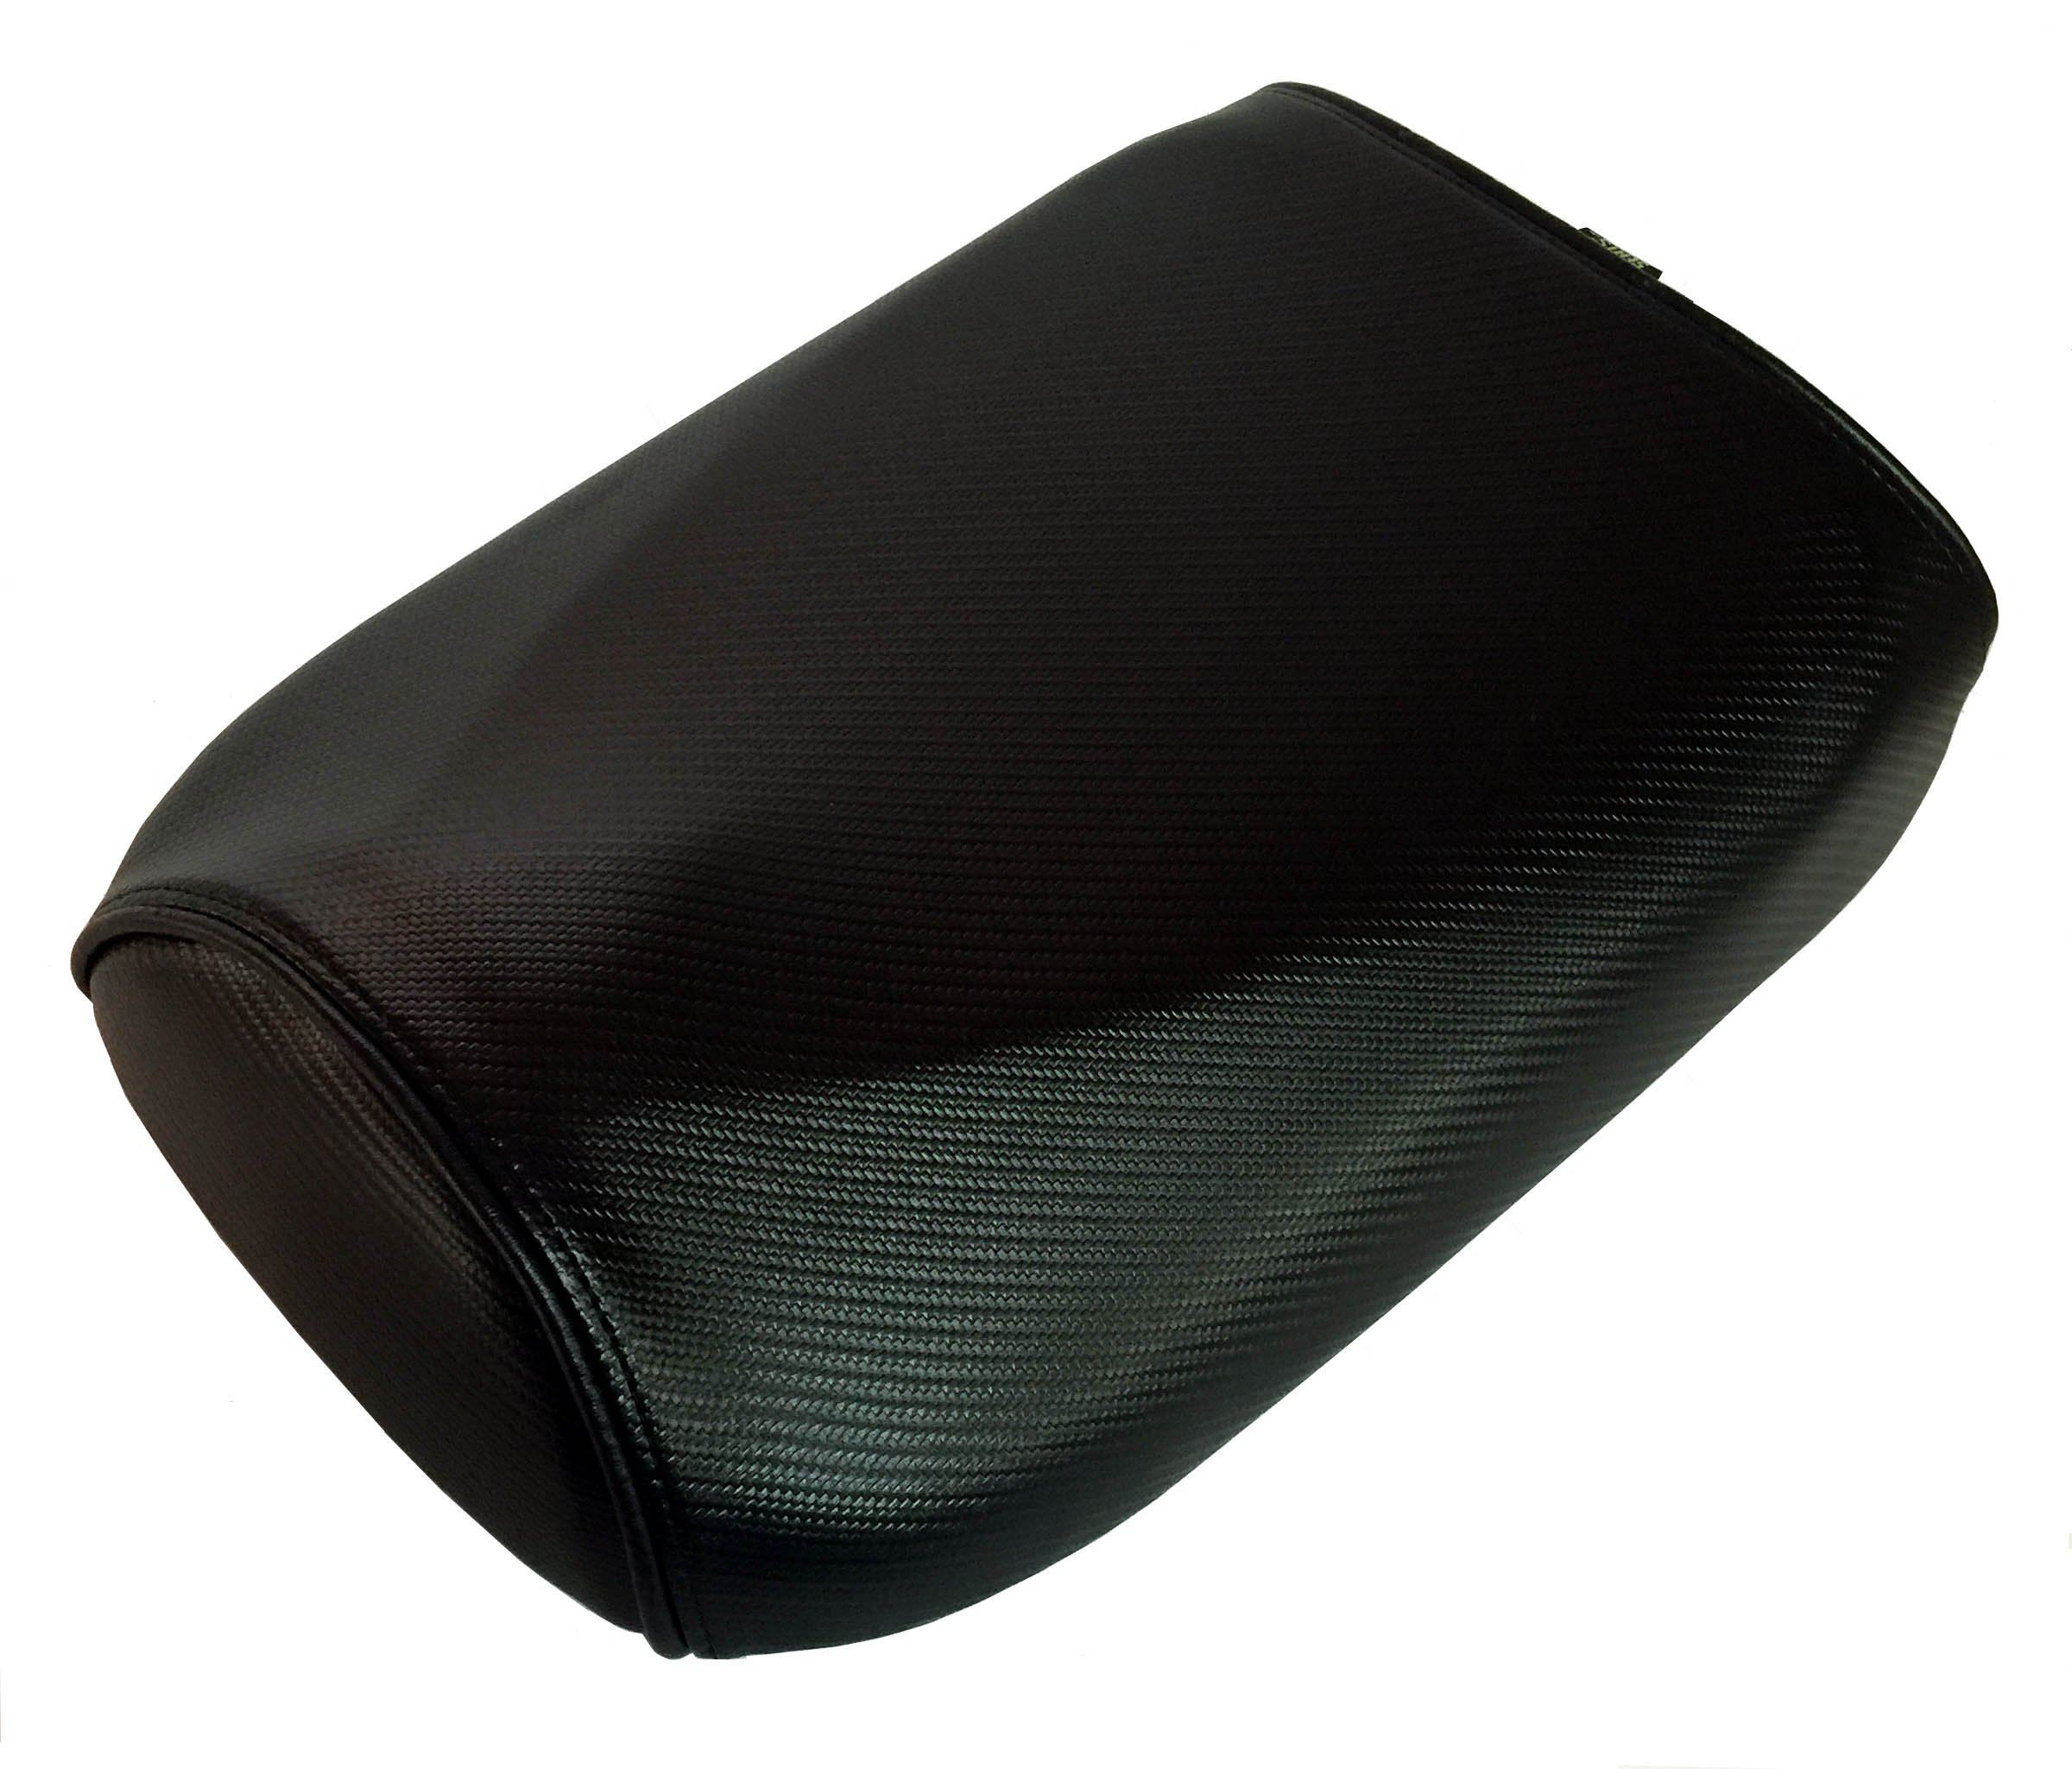 Honda Ruckus Cheeky Seats Black Carbon Fiber with Piping Seat Cover (Black Piping)